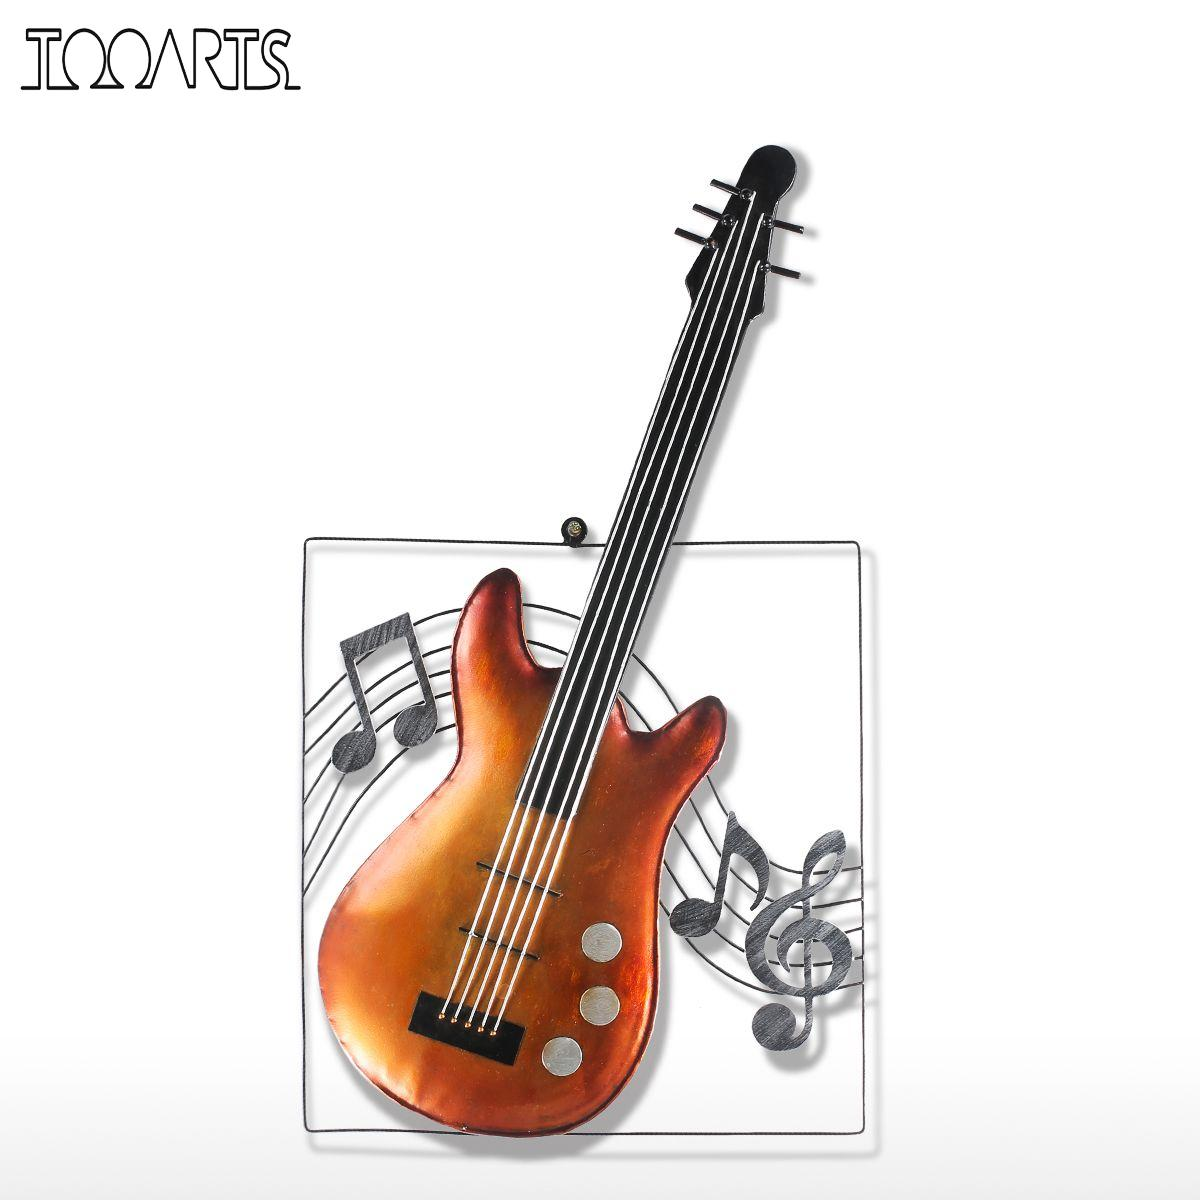 Musical instruments ornaments - Tooarts Guitar Musical Elements Figurine Ornament Modern Metal Home Decor Wall Hangings Decor Music Theme Instrument